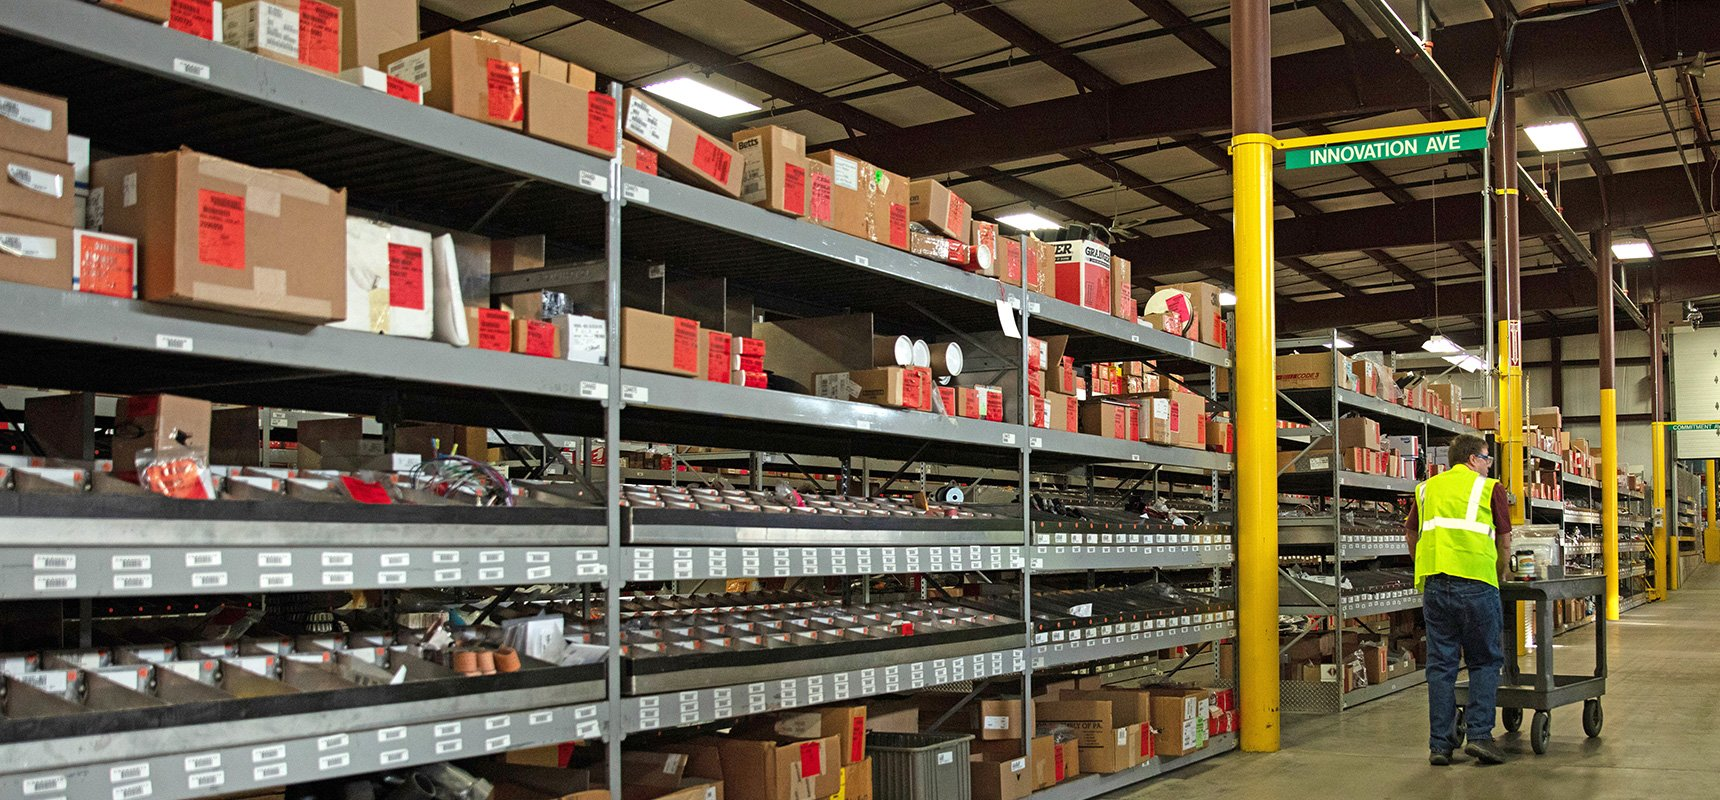 Pierce product support supply warehouse with shelves stocked full of boxes, showing an employee pushing a cart of parts down an aisle.